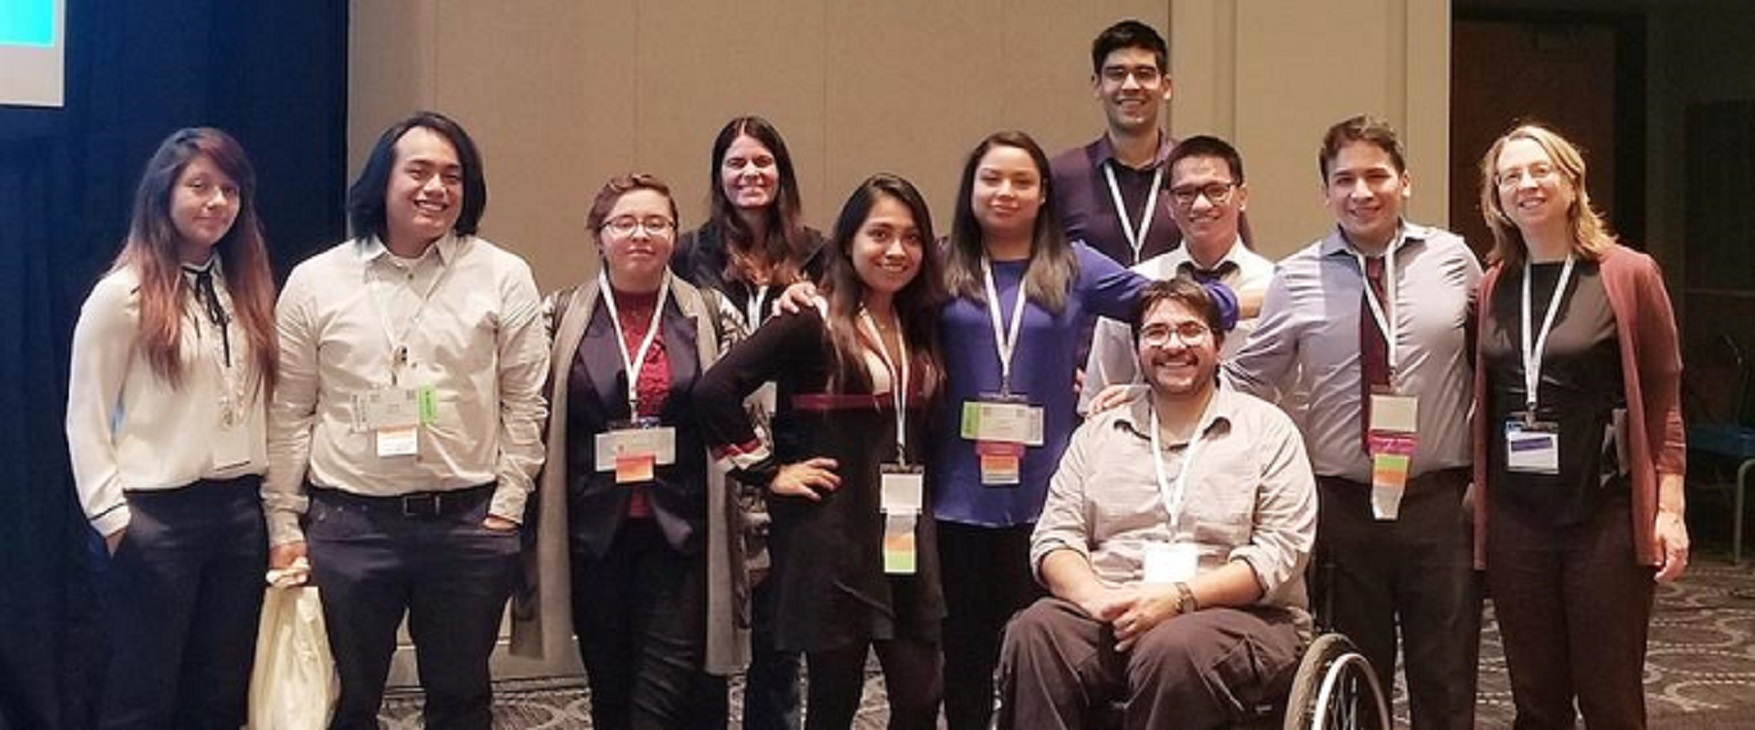 A group of NEIU students and faculty at the SACNAS Annual Conference in Salt Lake City, Utah